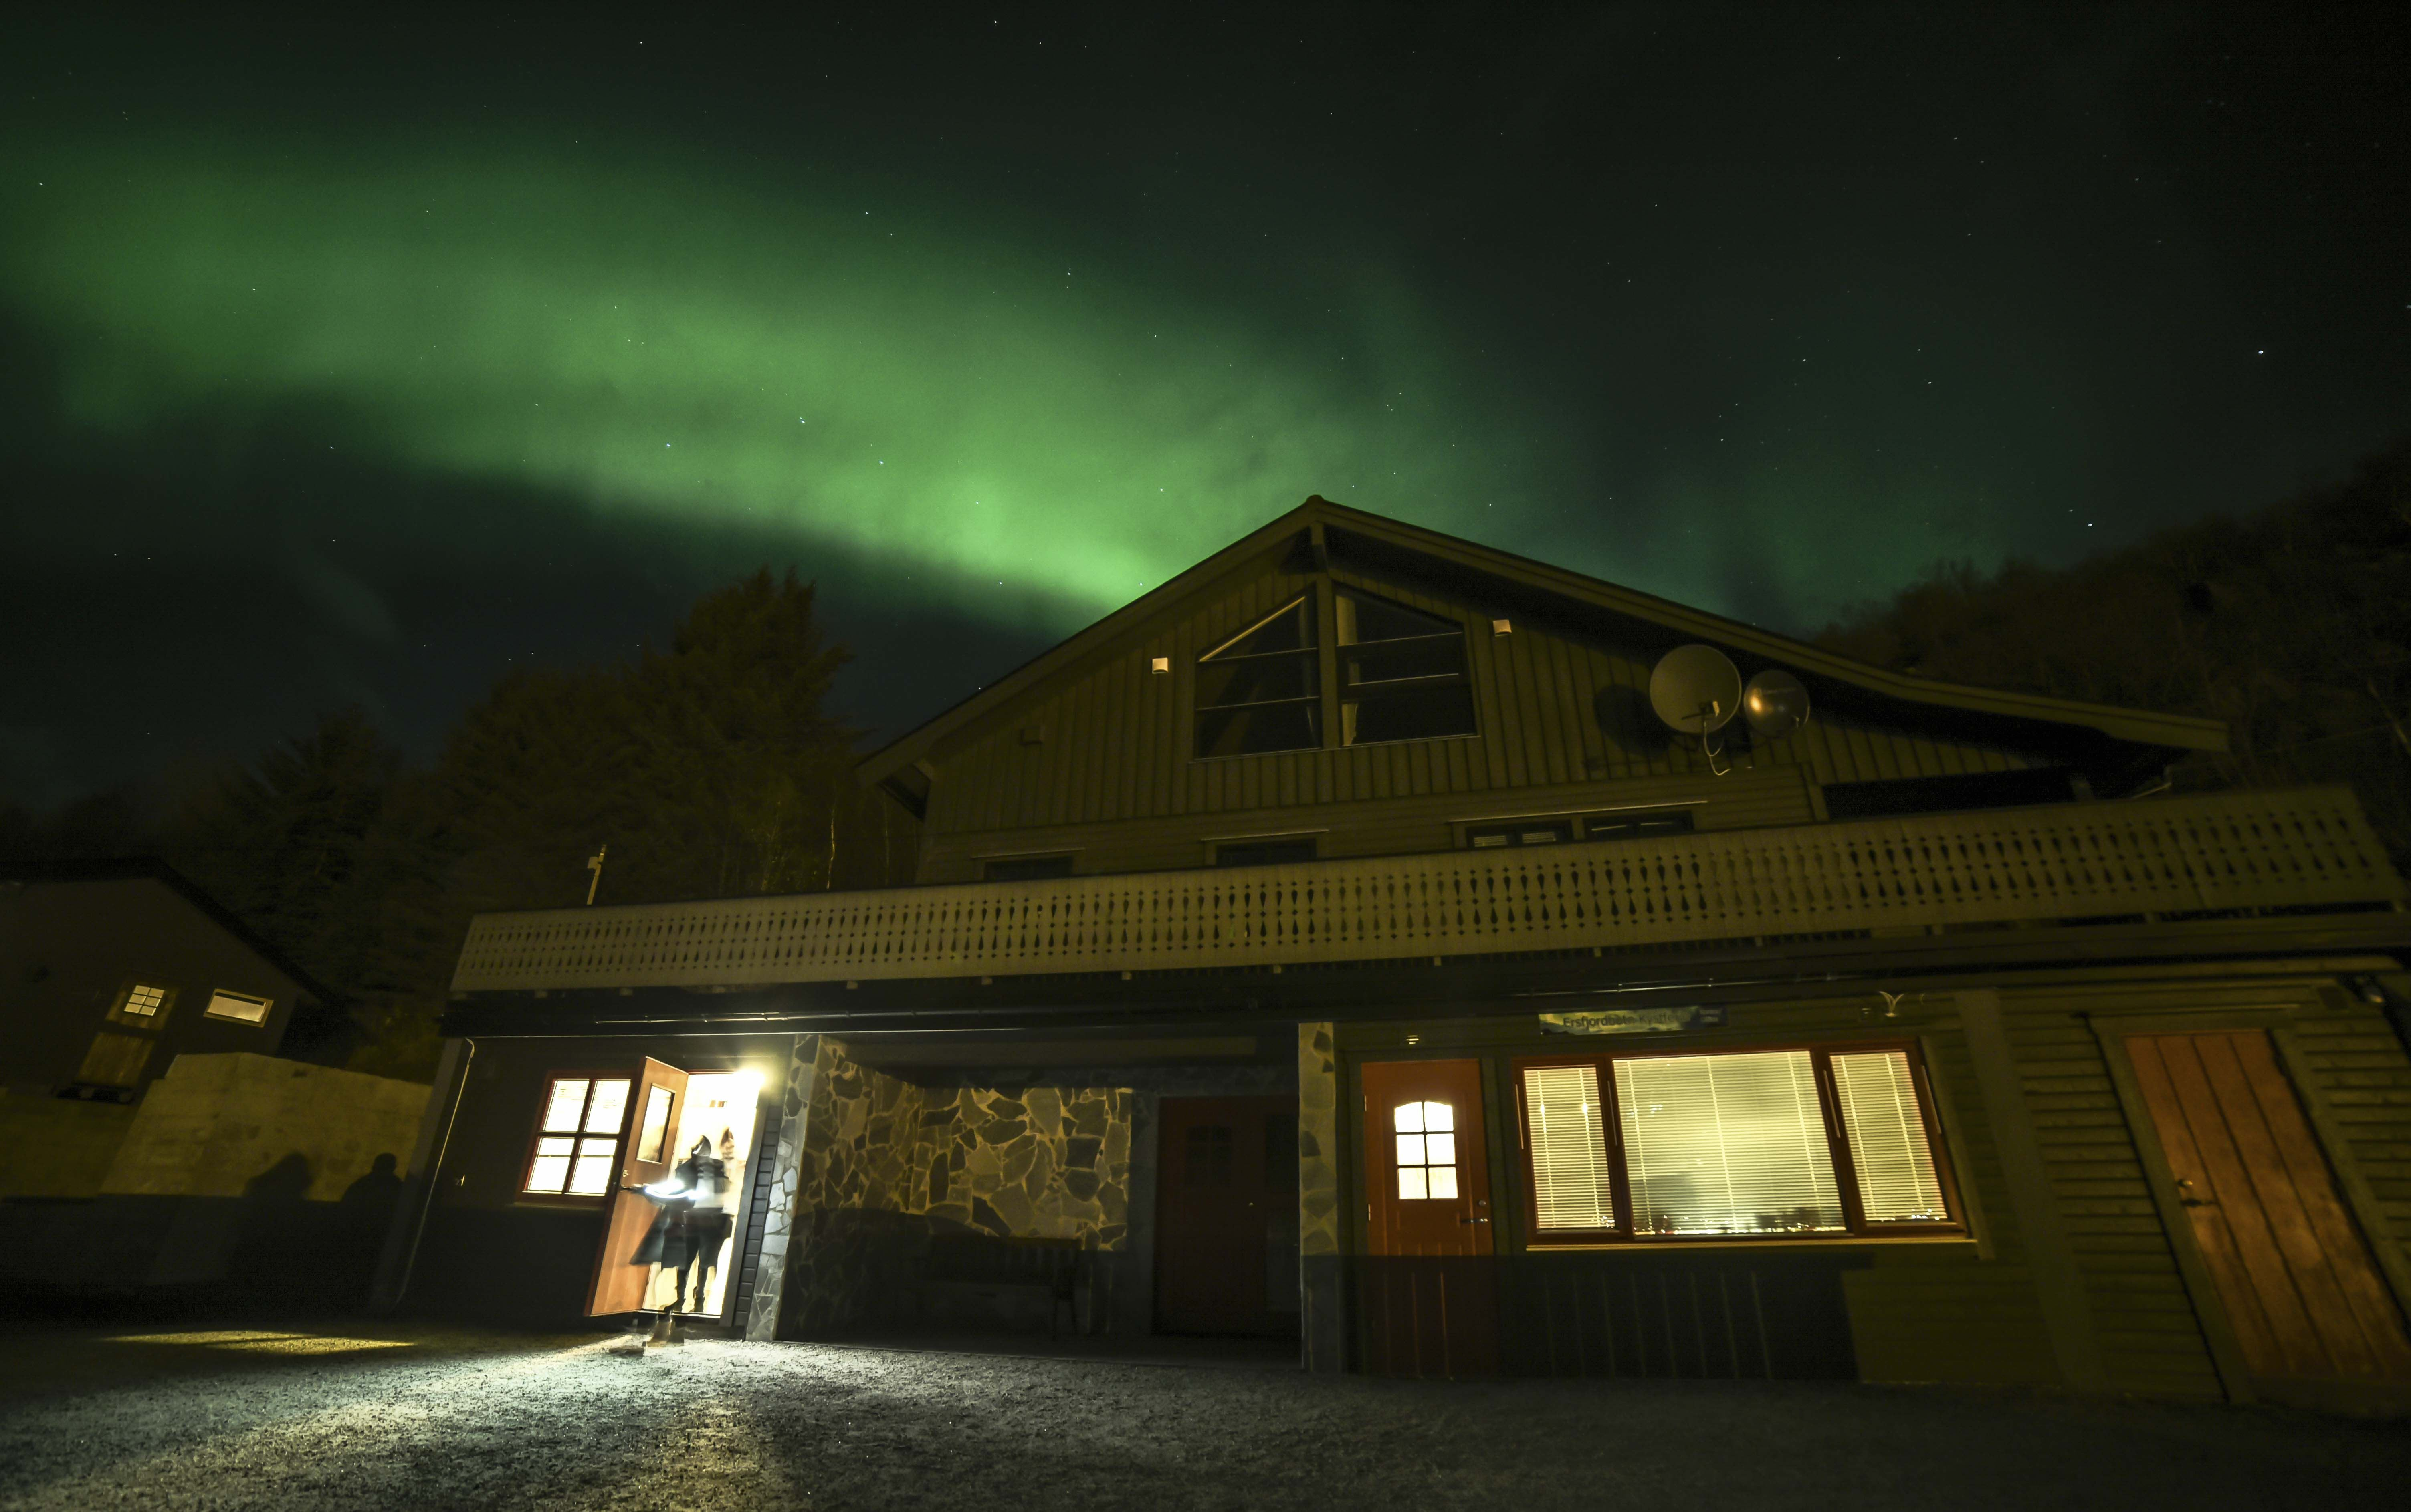 Northern Lights at Ersfjord - an evening visit in Ersfjordbotn village - The Green Adventure